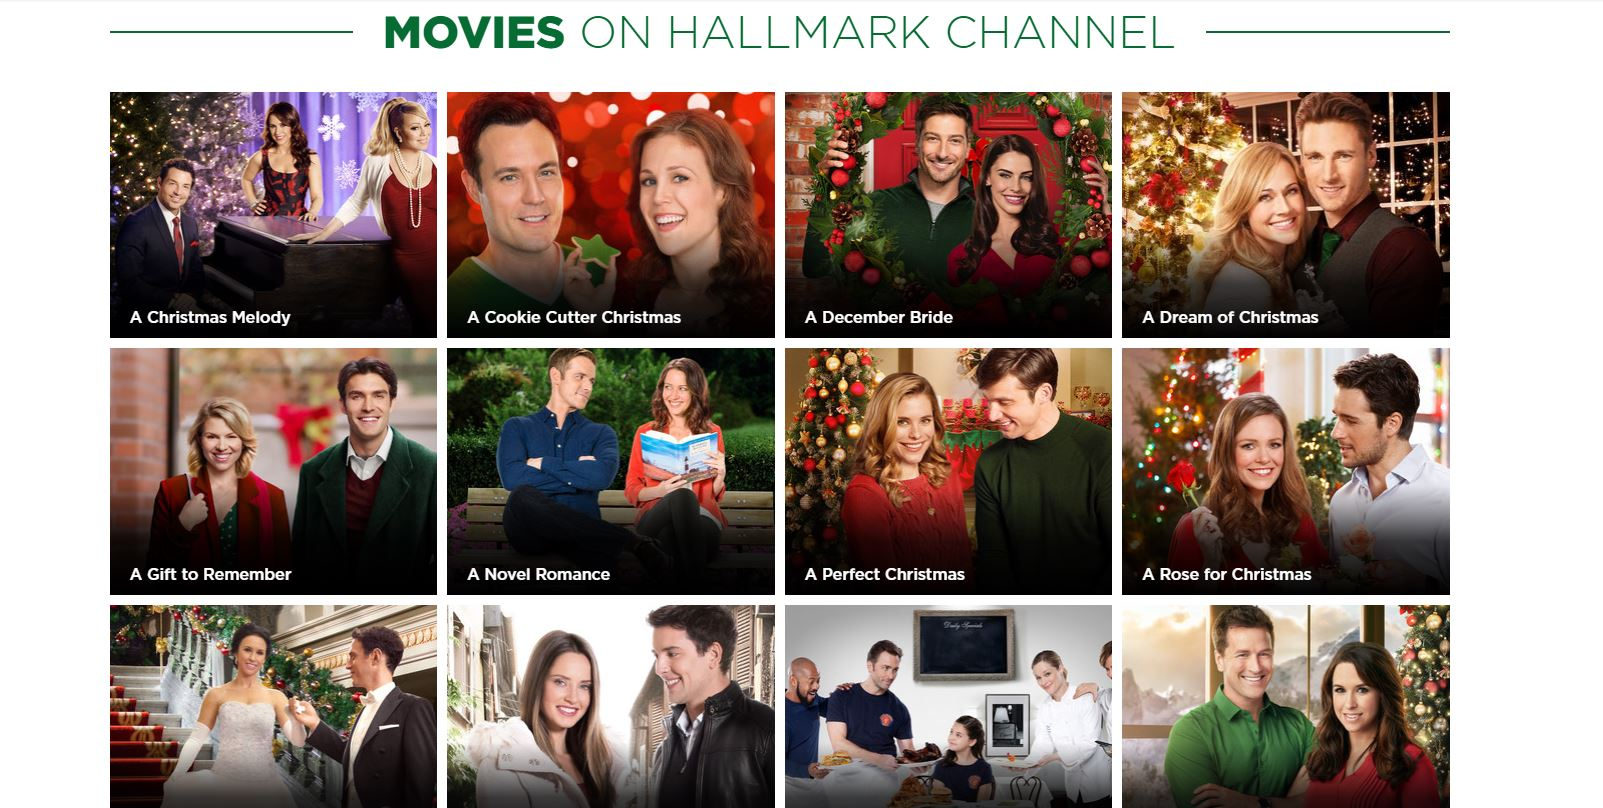 placentia library on twitter check out the books that inspired the hallmark movies we all love so much and take the winterreadingchallenge today